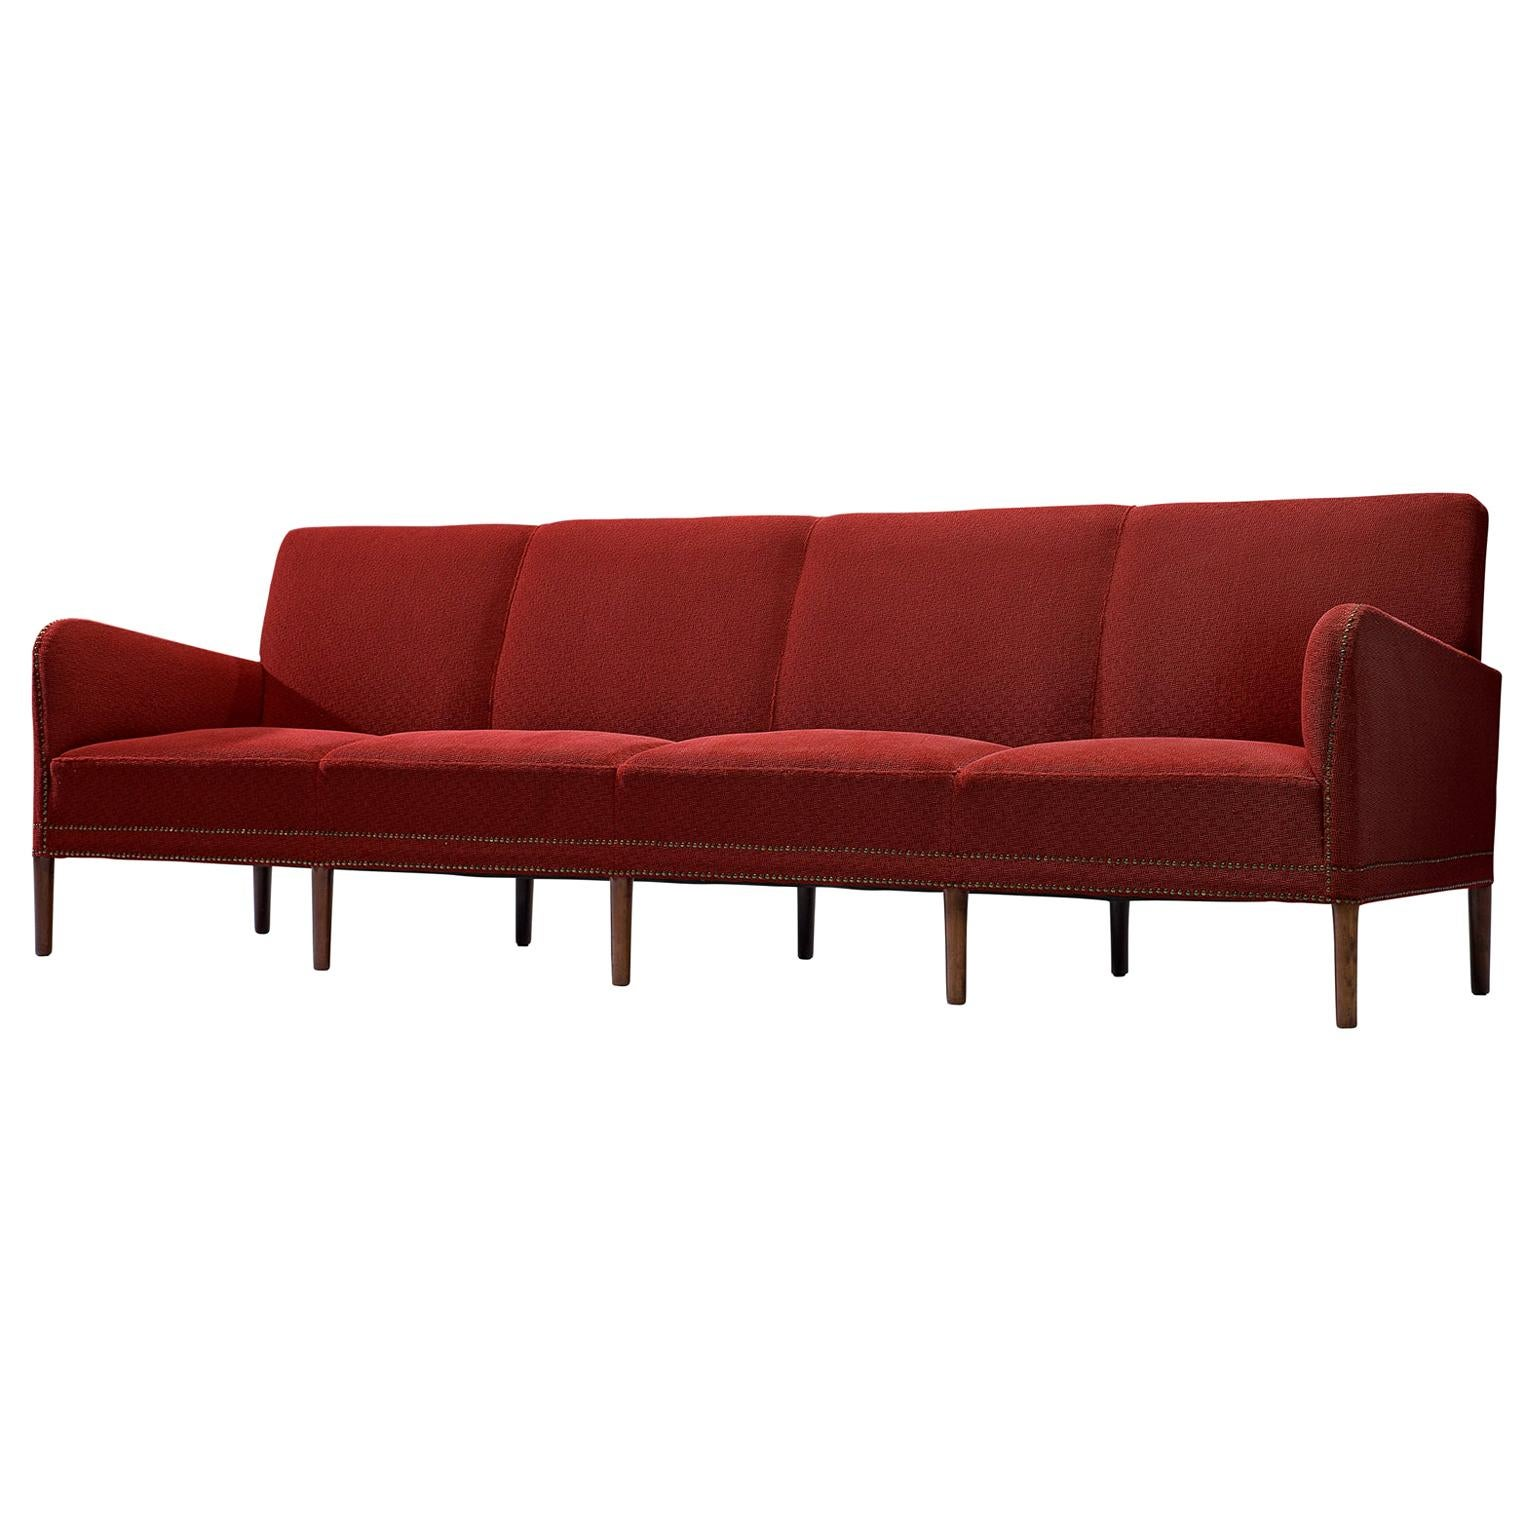 Large Four-Seat Danish Sofa in Red Fabric, 1940s